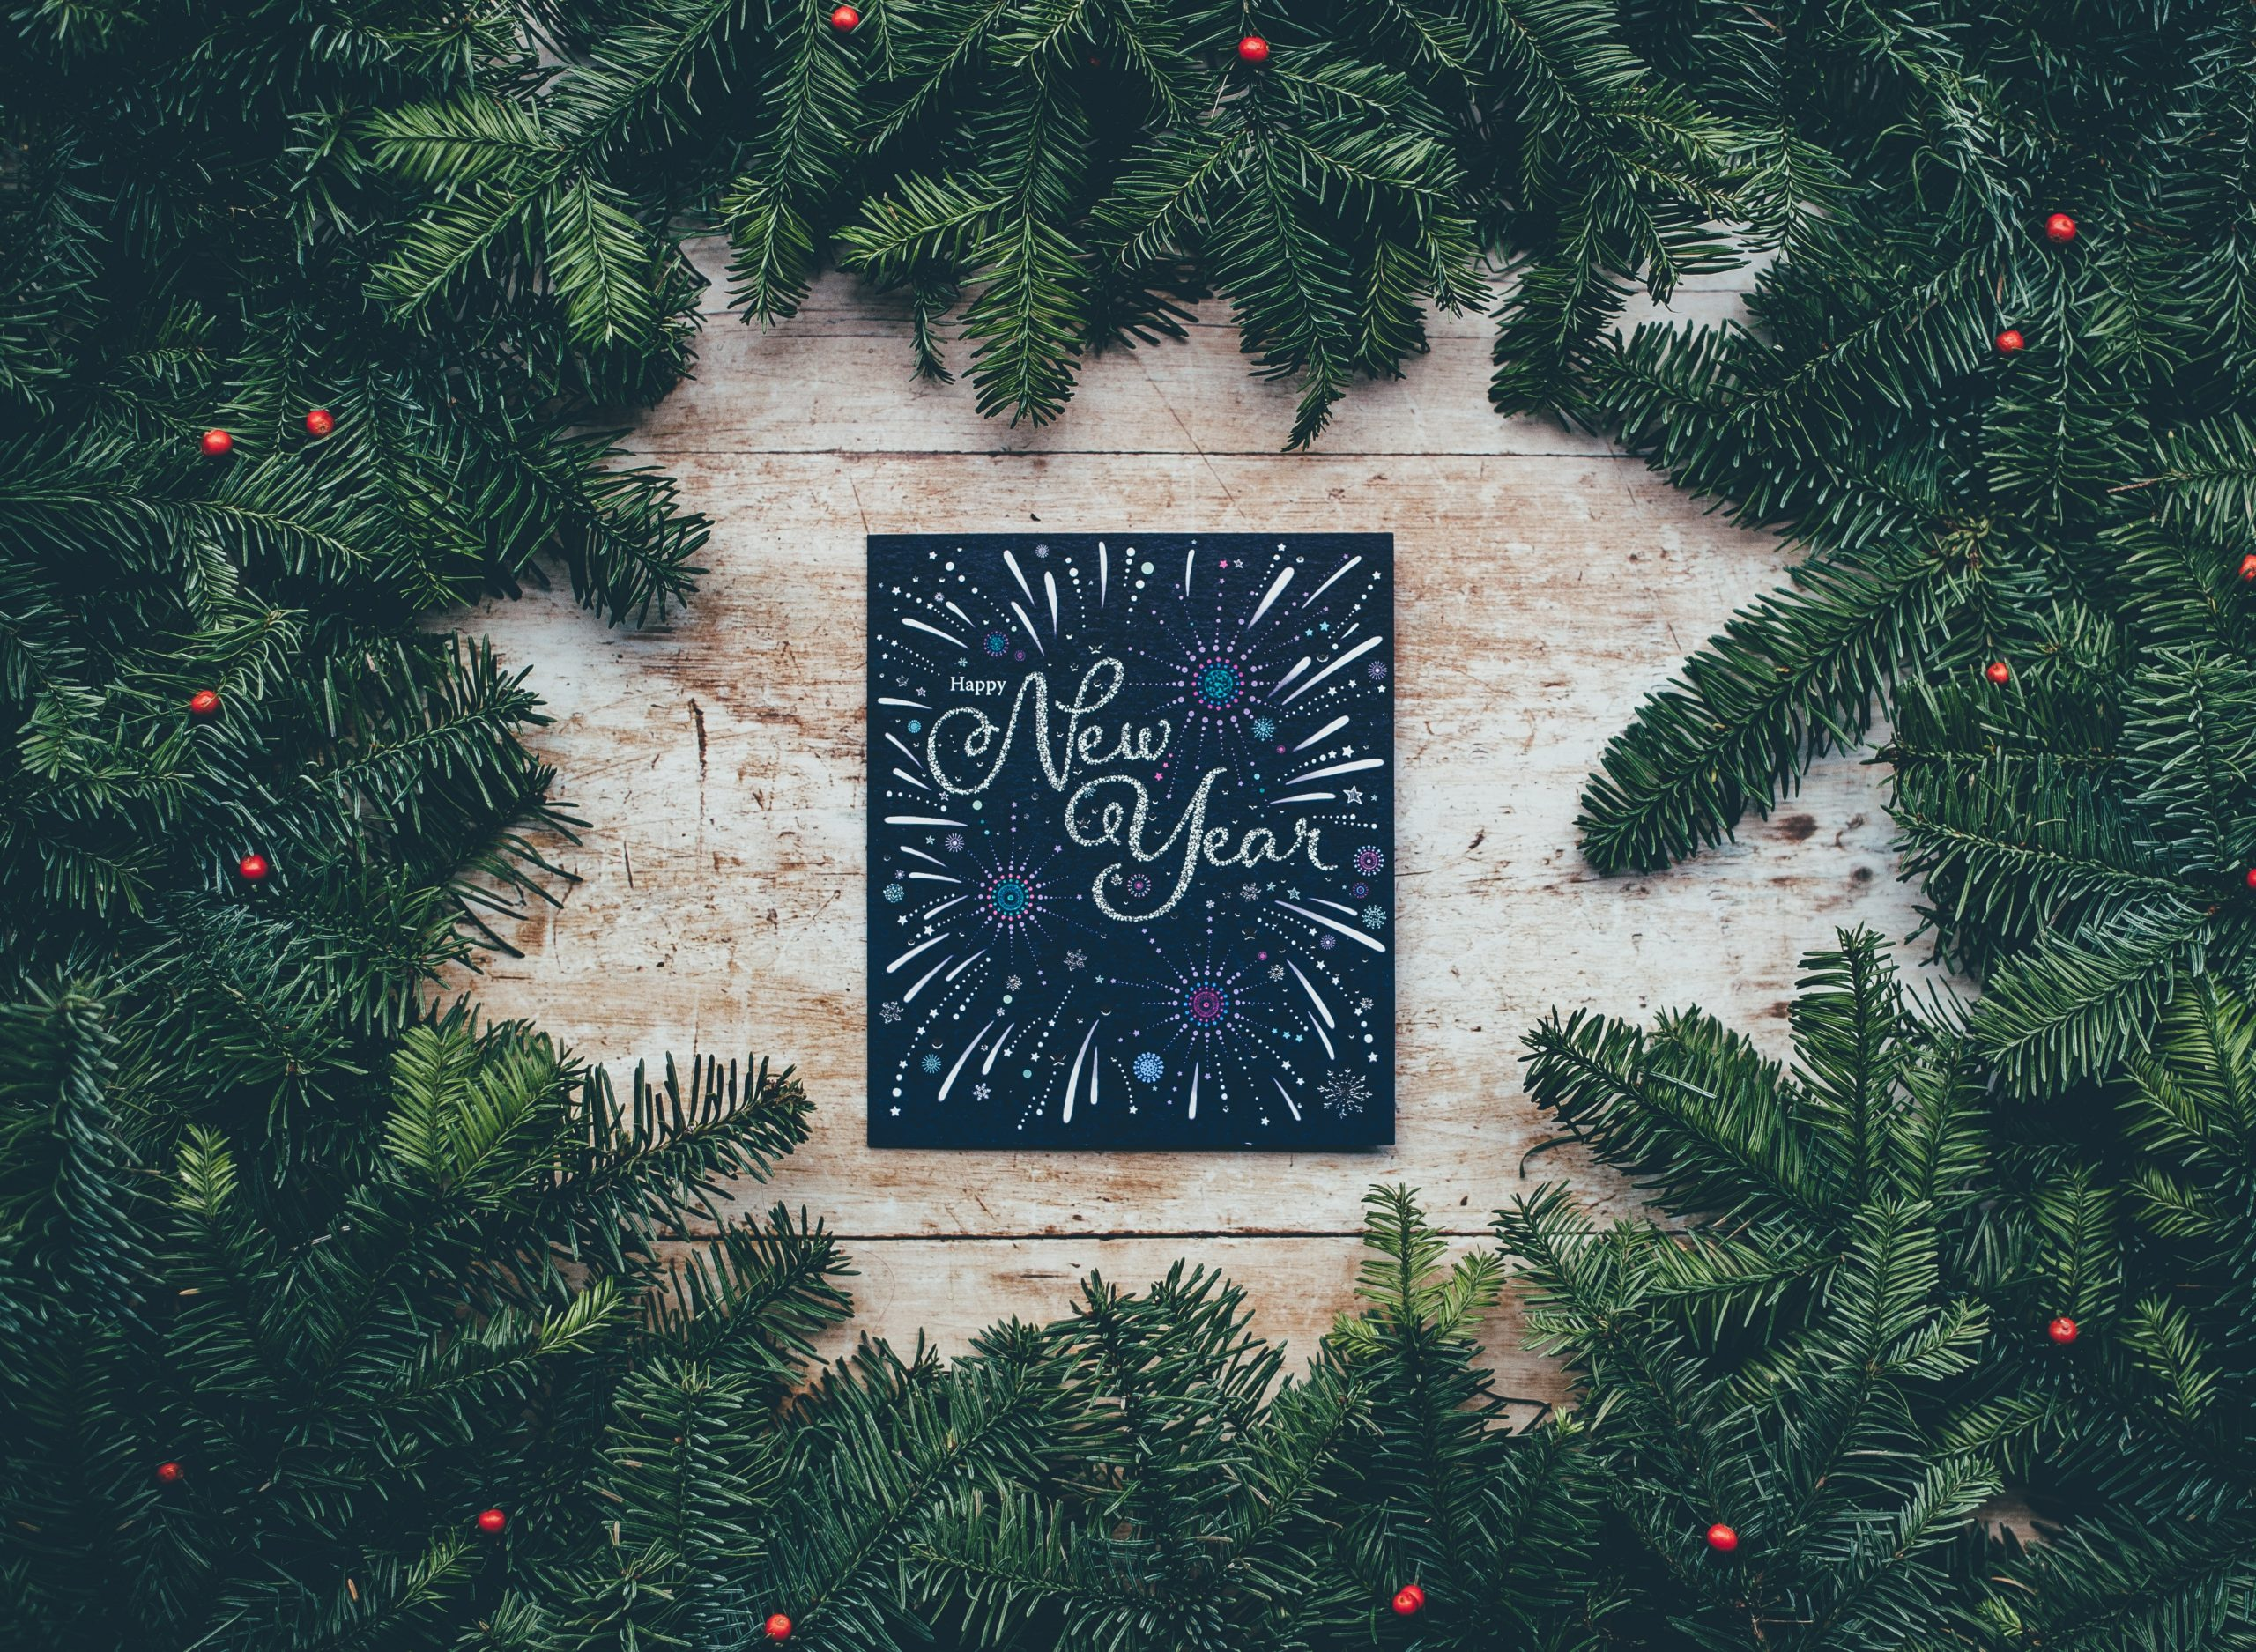 mental health marketing strategy for the new year